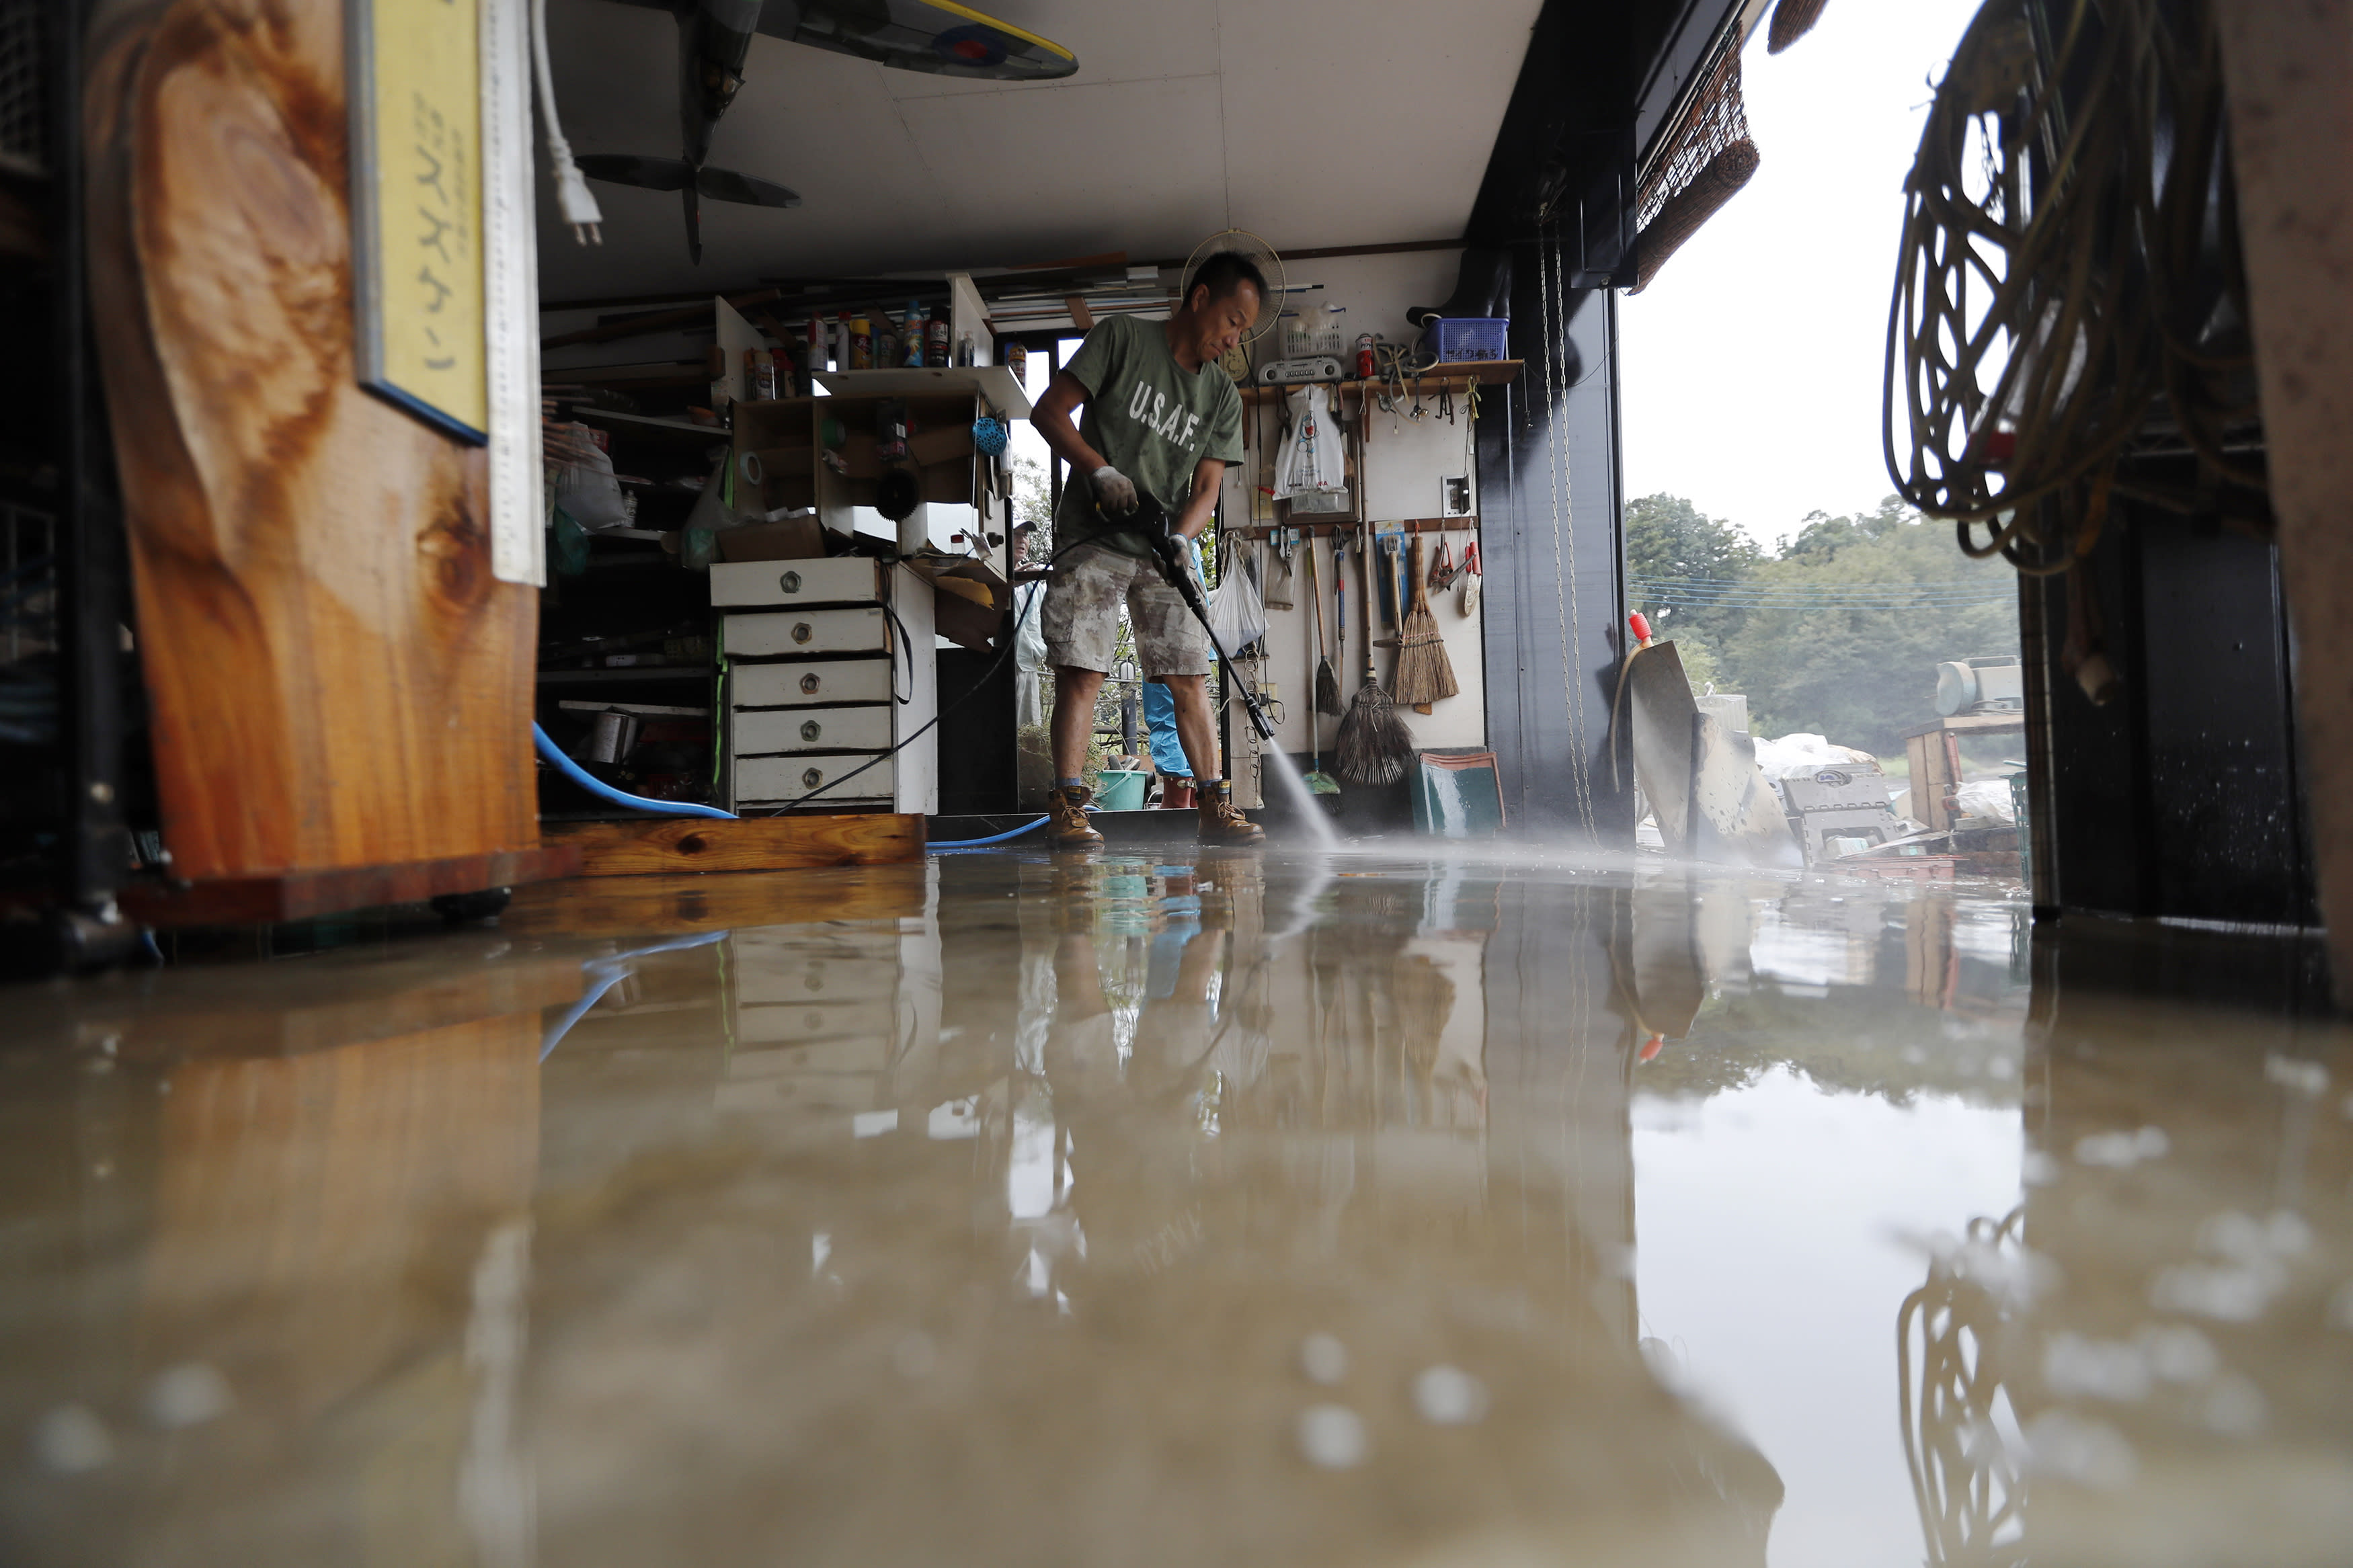 A volunteer helps clean up Monday, Oct. 14, 2019, in Kawagoe City, Japan. Typhoon Hagibis dropped record amounts of rain for a period in some spots, according to meteorological officials, causing more than 20 rivers to overflow. Some of the muddy waters in streets, fields and residential areas have subsided. But many places remained flooded, with homes and surrounding roads covered in mud and littered with broken wooden pieces and debris. (AP Photo/Eugene Hoshiko)